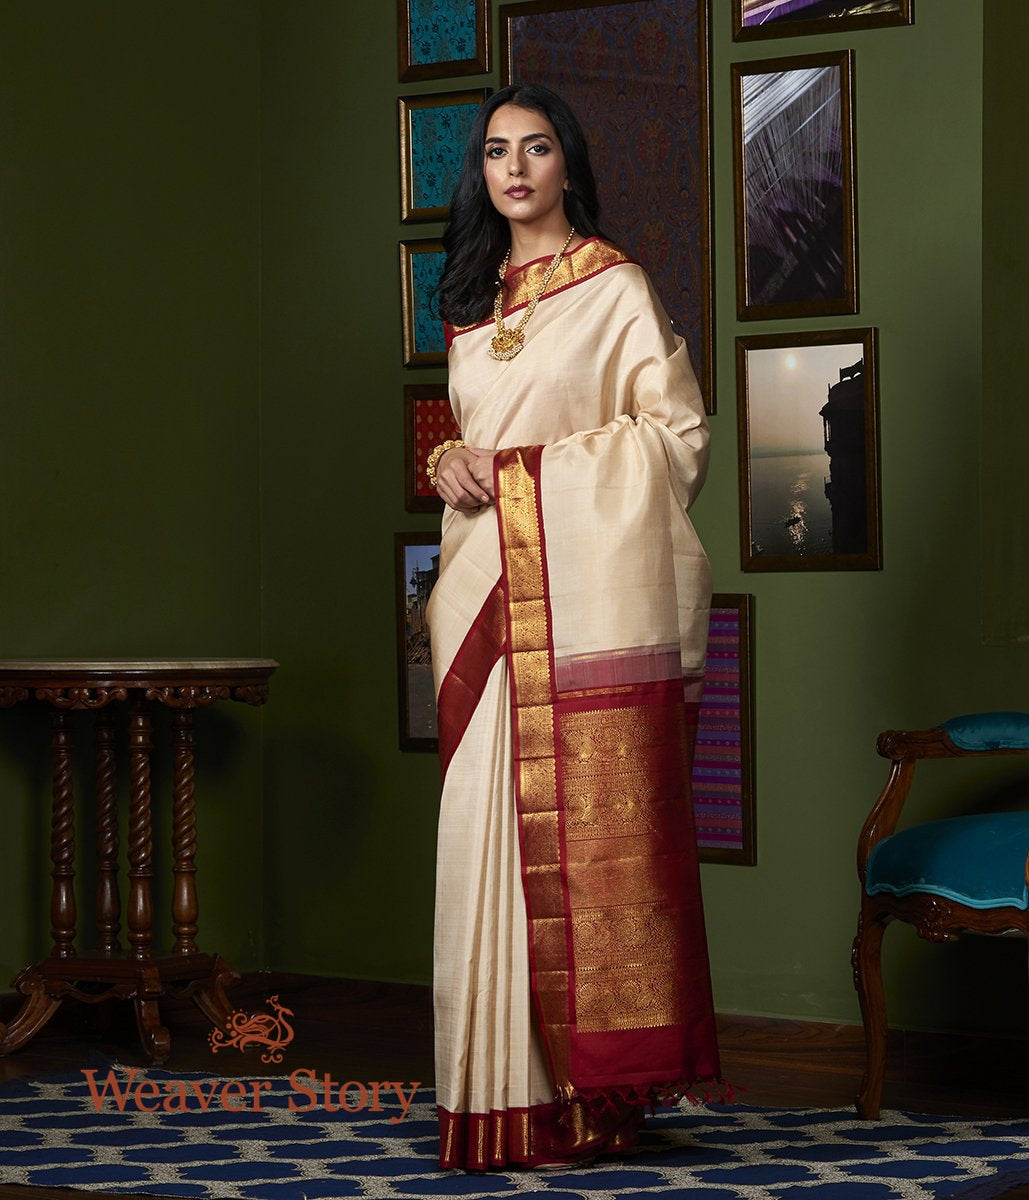 Handwoven Offwhite Kanjivaram Silk Saree with Red Border